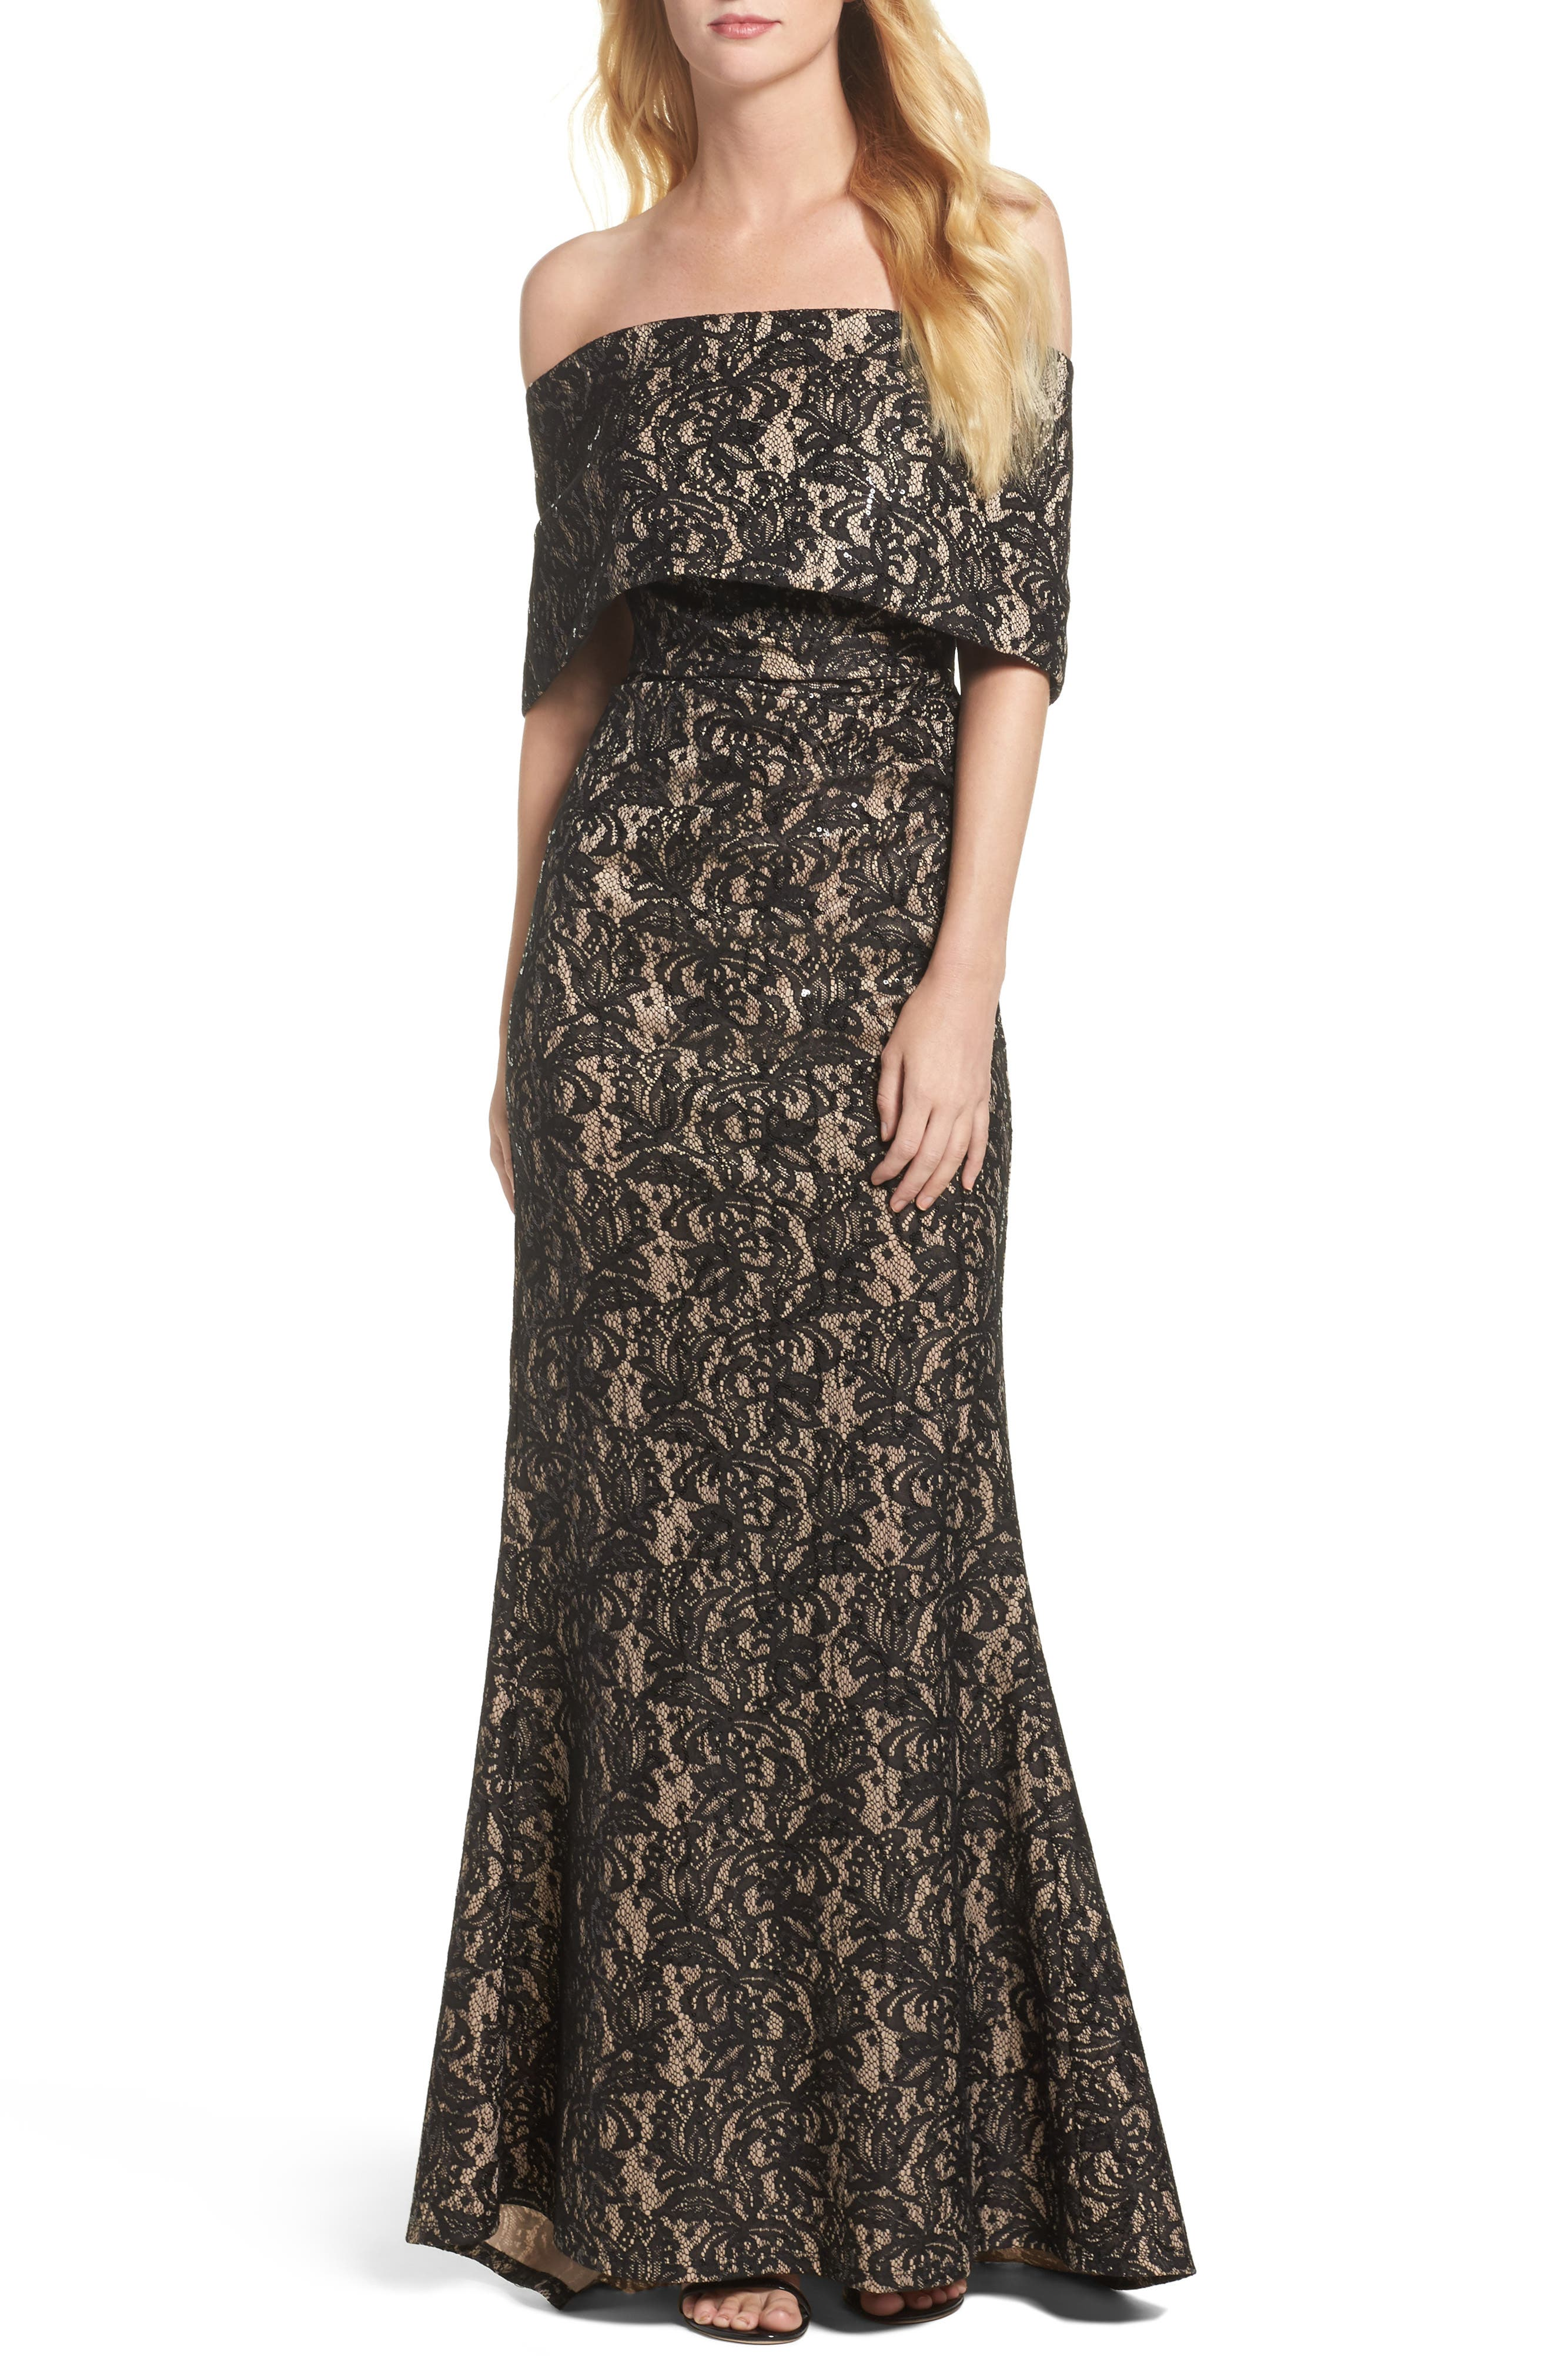 Vine Camuto Sequin Off the Shoulder Gown